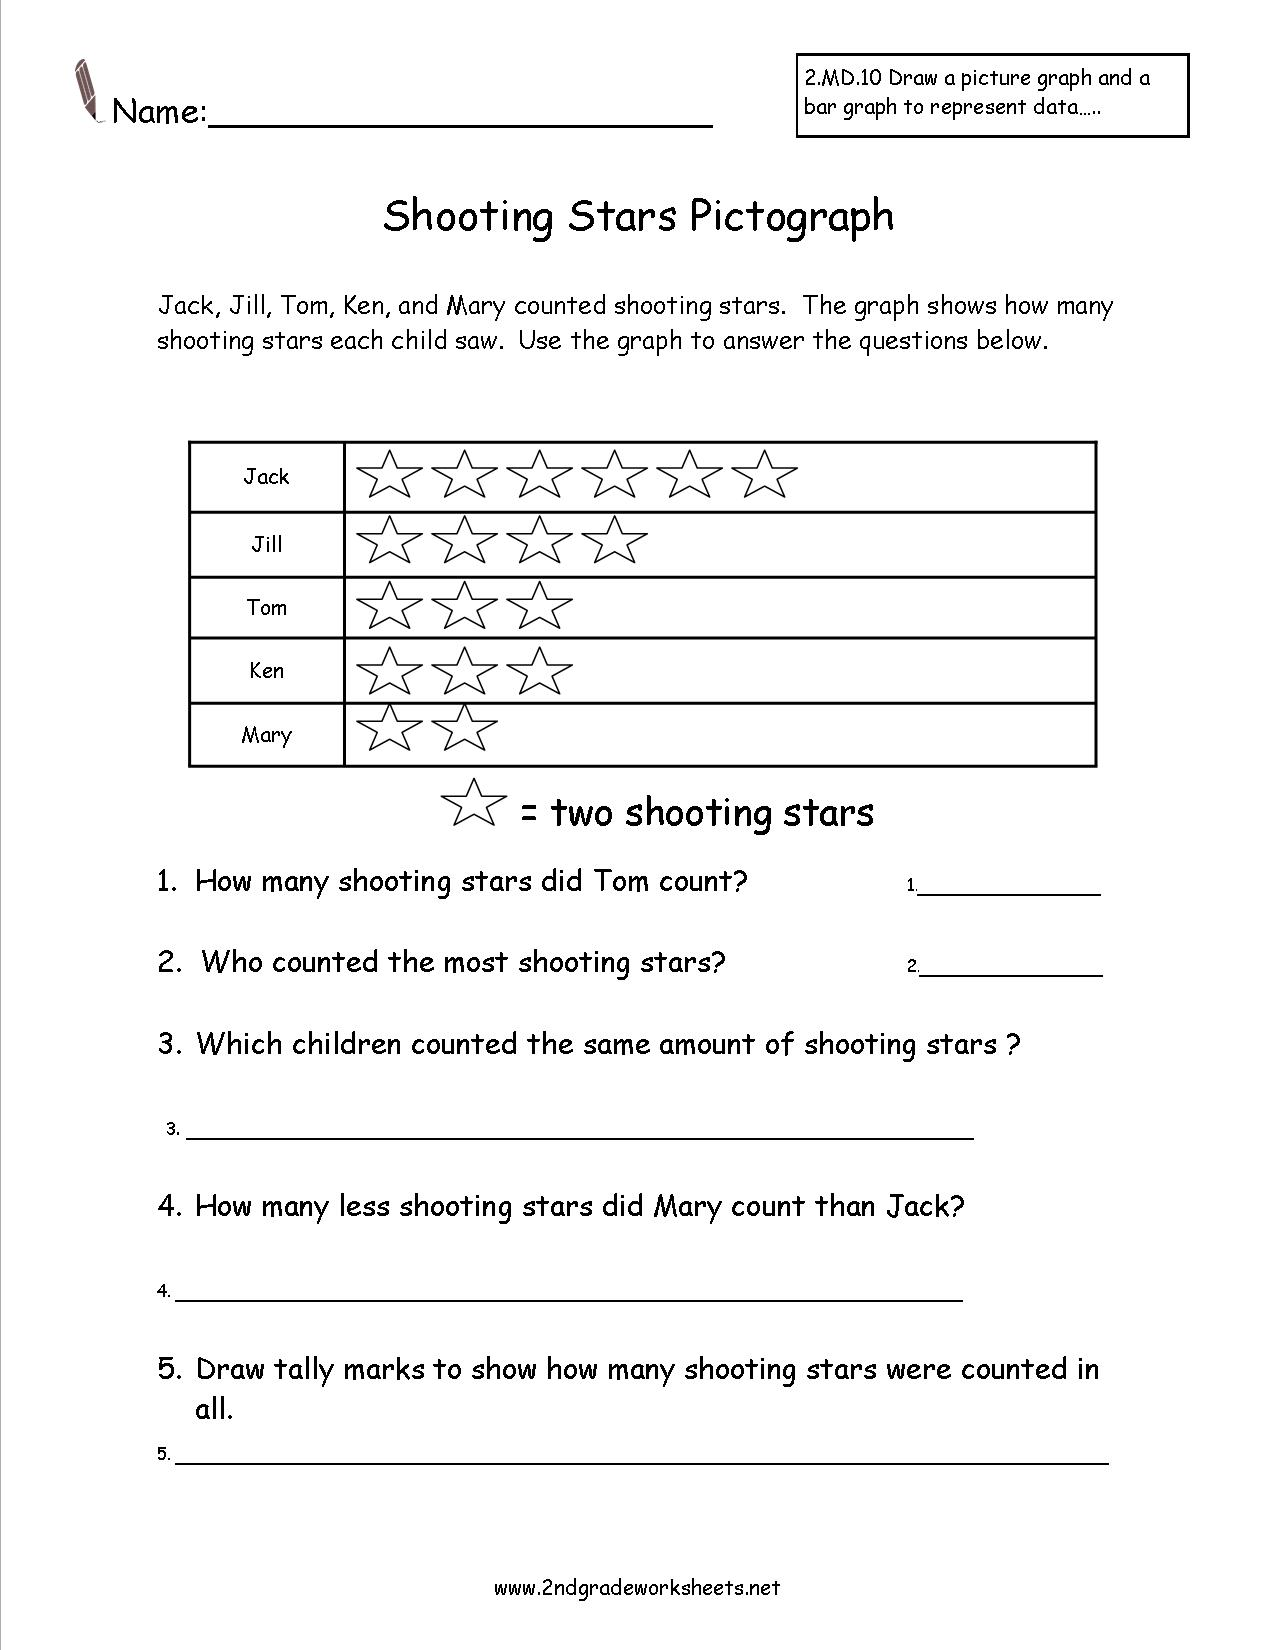 Free Printable Pictograph Worksheets For Kindergarten